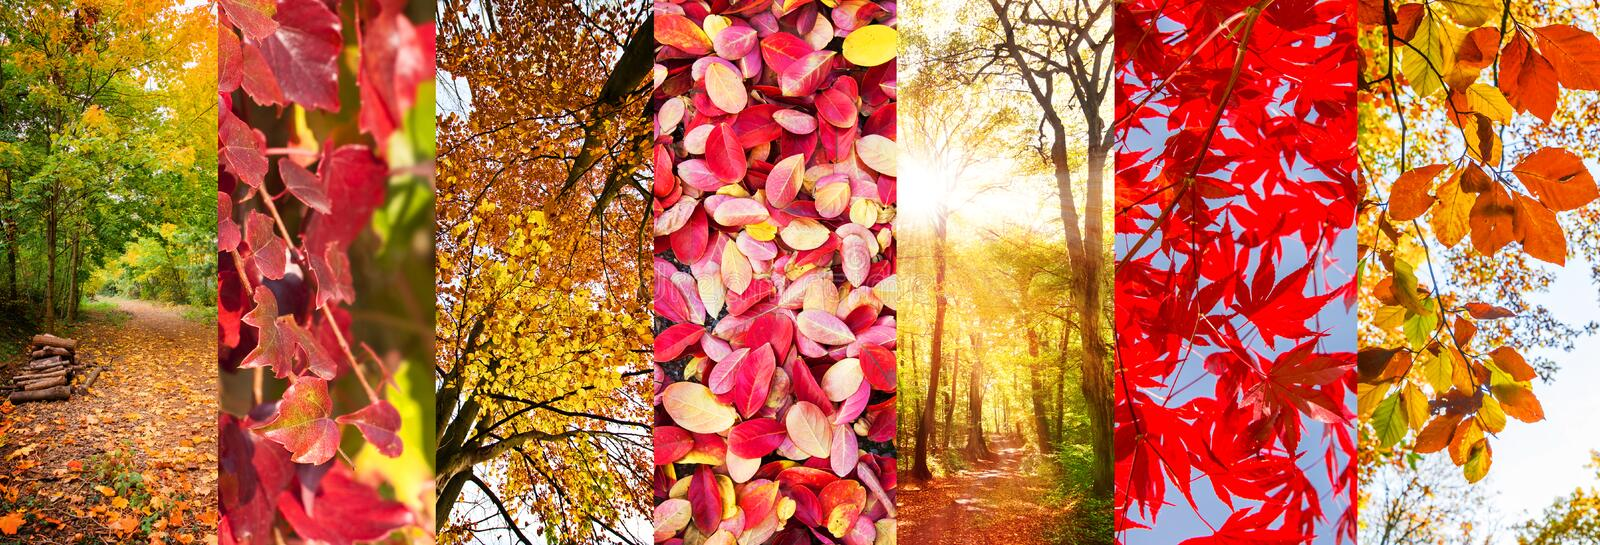 Autumn leaves and nature landscapes panoramic collage royalty free stock photography